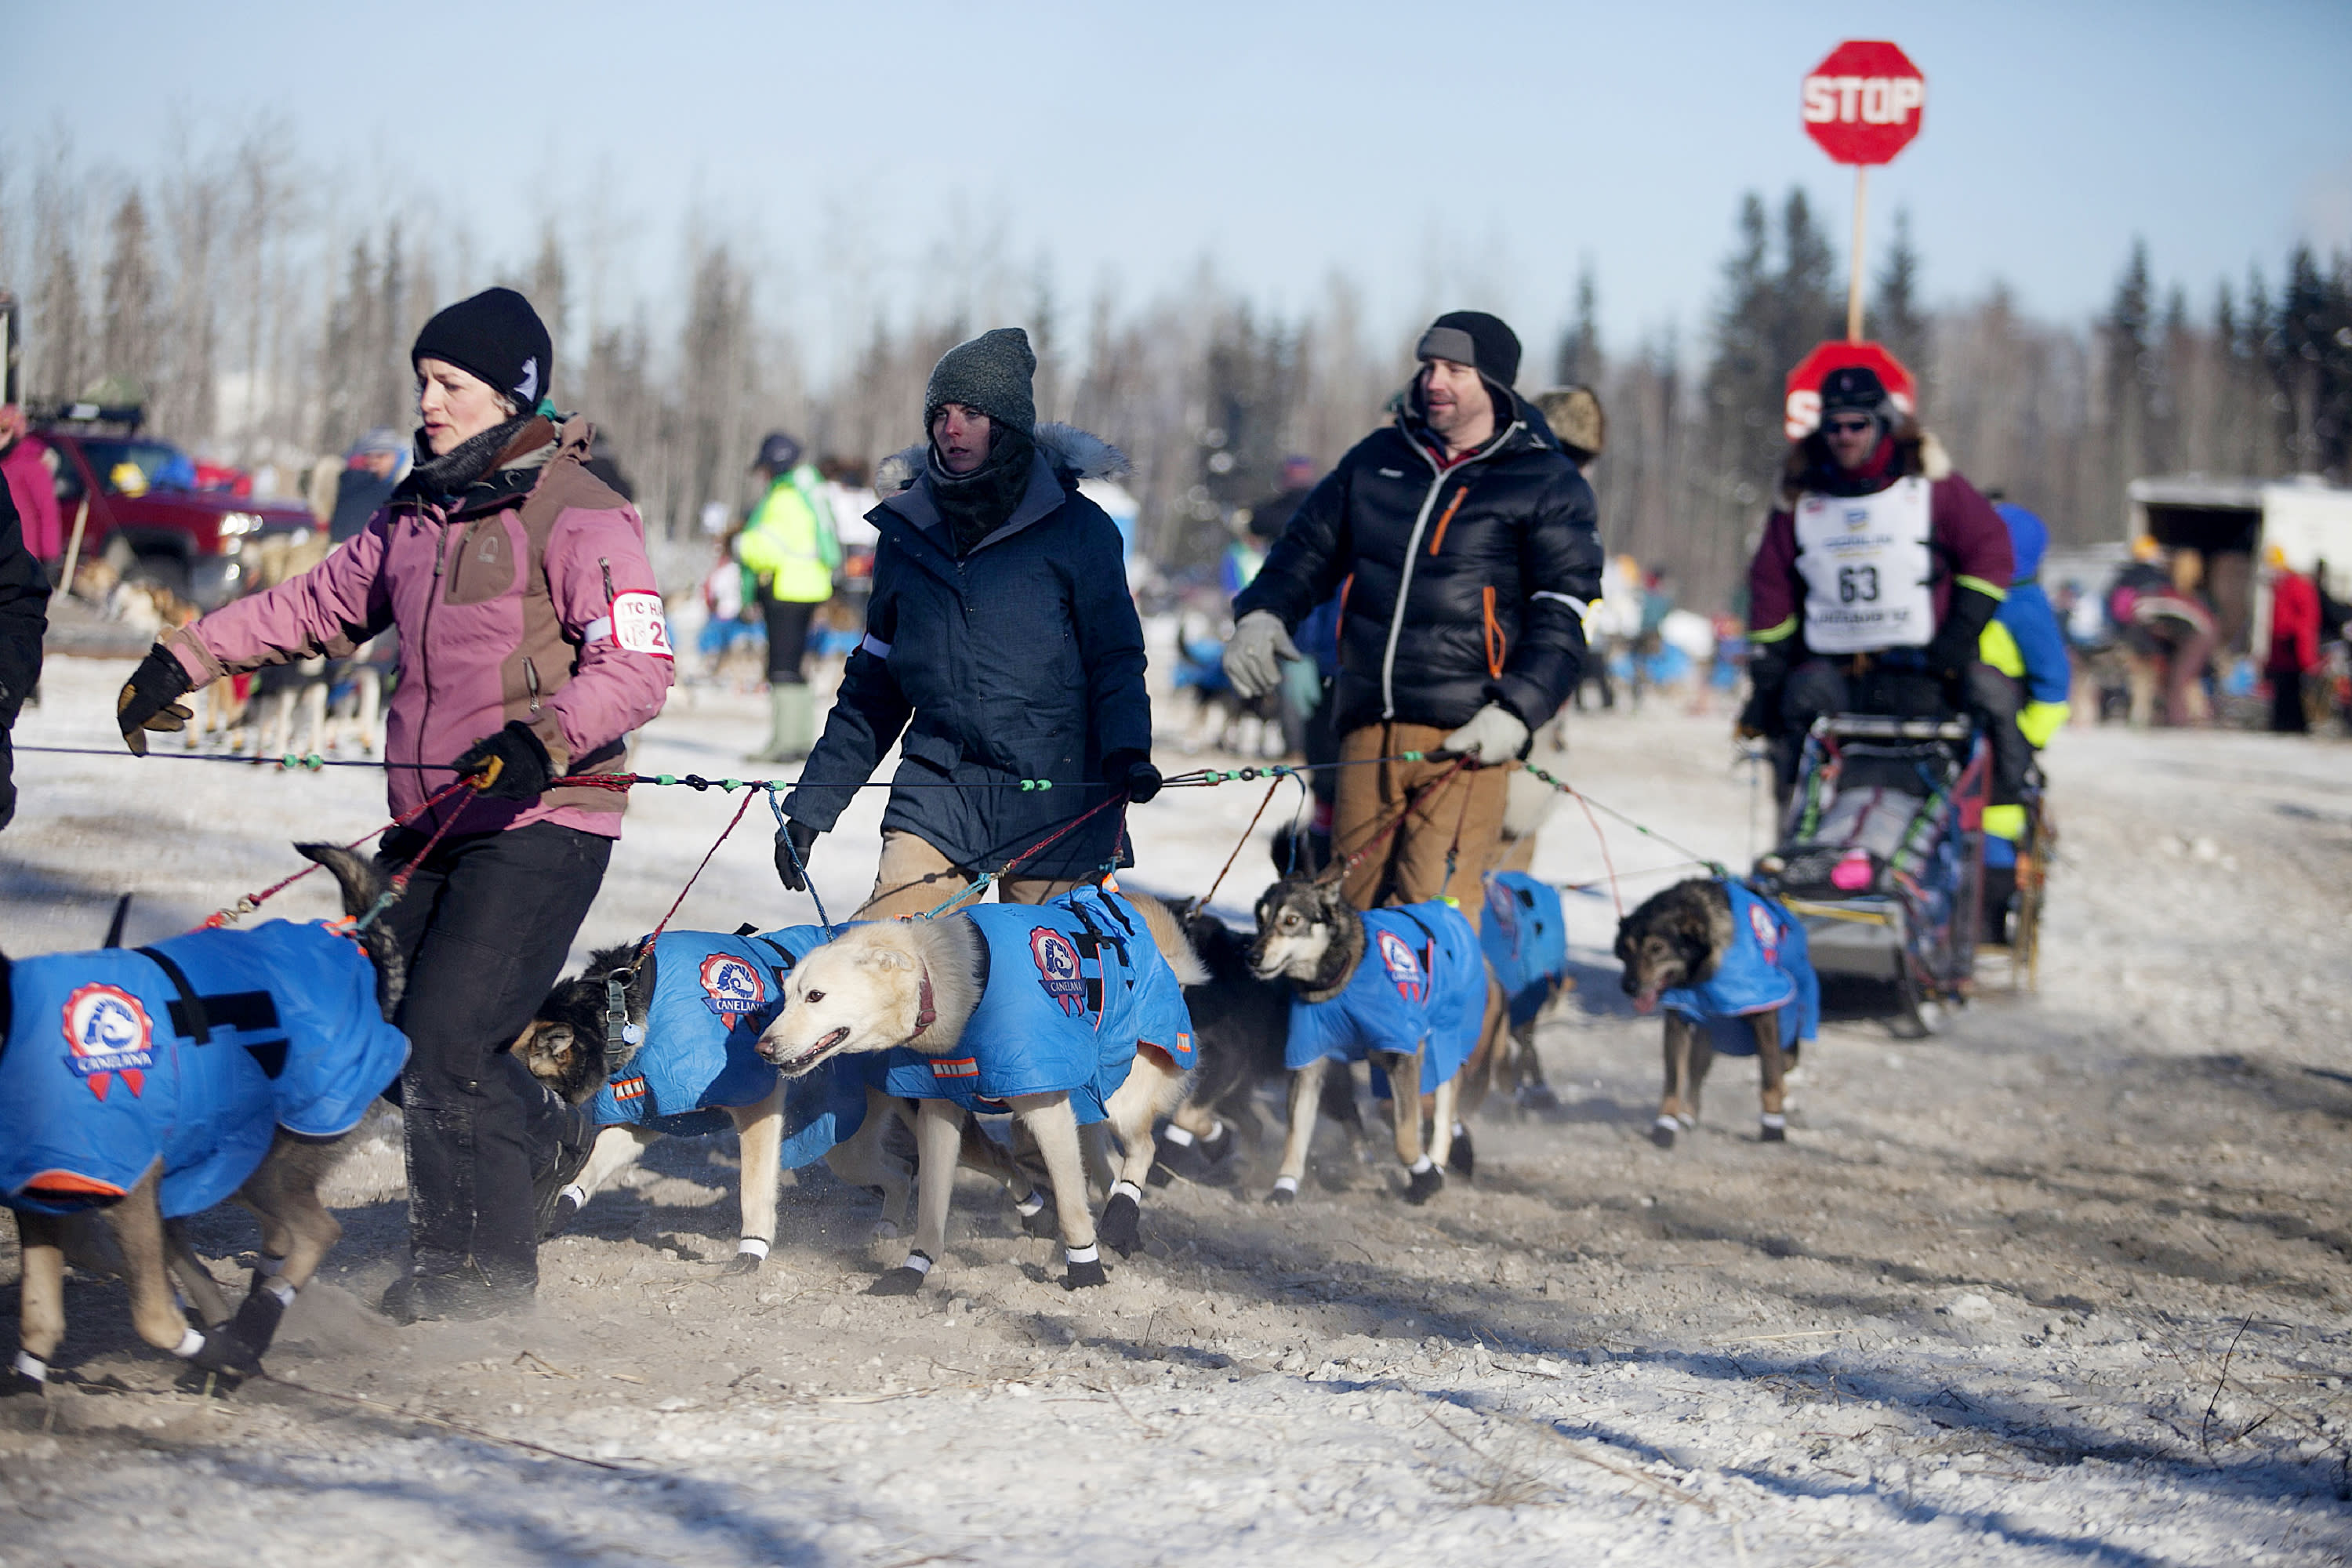 FILE - In this March 6, 2017 file photo, volunteer handlers guide teams out of the dog yard and down the chute to the starting line of the 45th Iditarod Trail Sled Dog Race in Fairbanks, Alaska. The world's most famous sled dog race will go forward in 2021, and officials are preparing for every potential contingency now for what the coronavirus and the world might look like in March when the Iditarod starts. It's not the mushers that worry Iditarod CEO Rob Urbach; they're used to social distancing along the 1,000 mile trail. The headaches start with what to do with hundreds of volunteers needed to run the race, some scattered in villages along the trail between Anchorage and Nome, to protect them and the village populations. (AP Photo/Ellamarie Quimby, File)